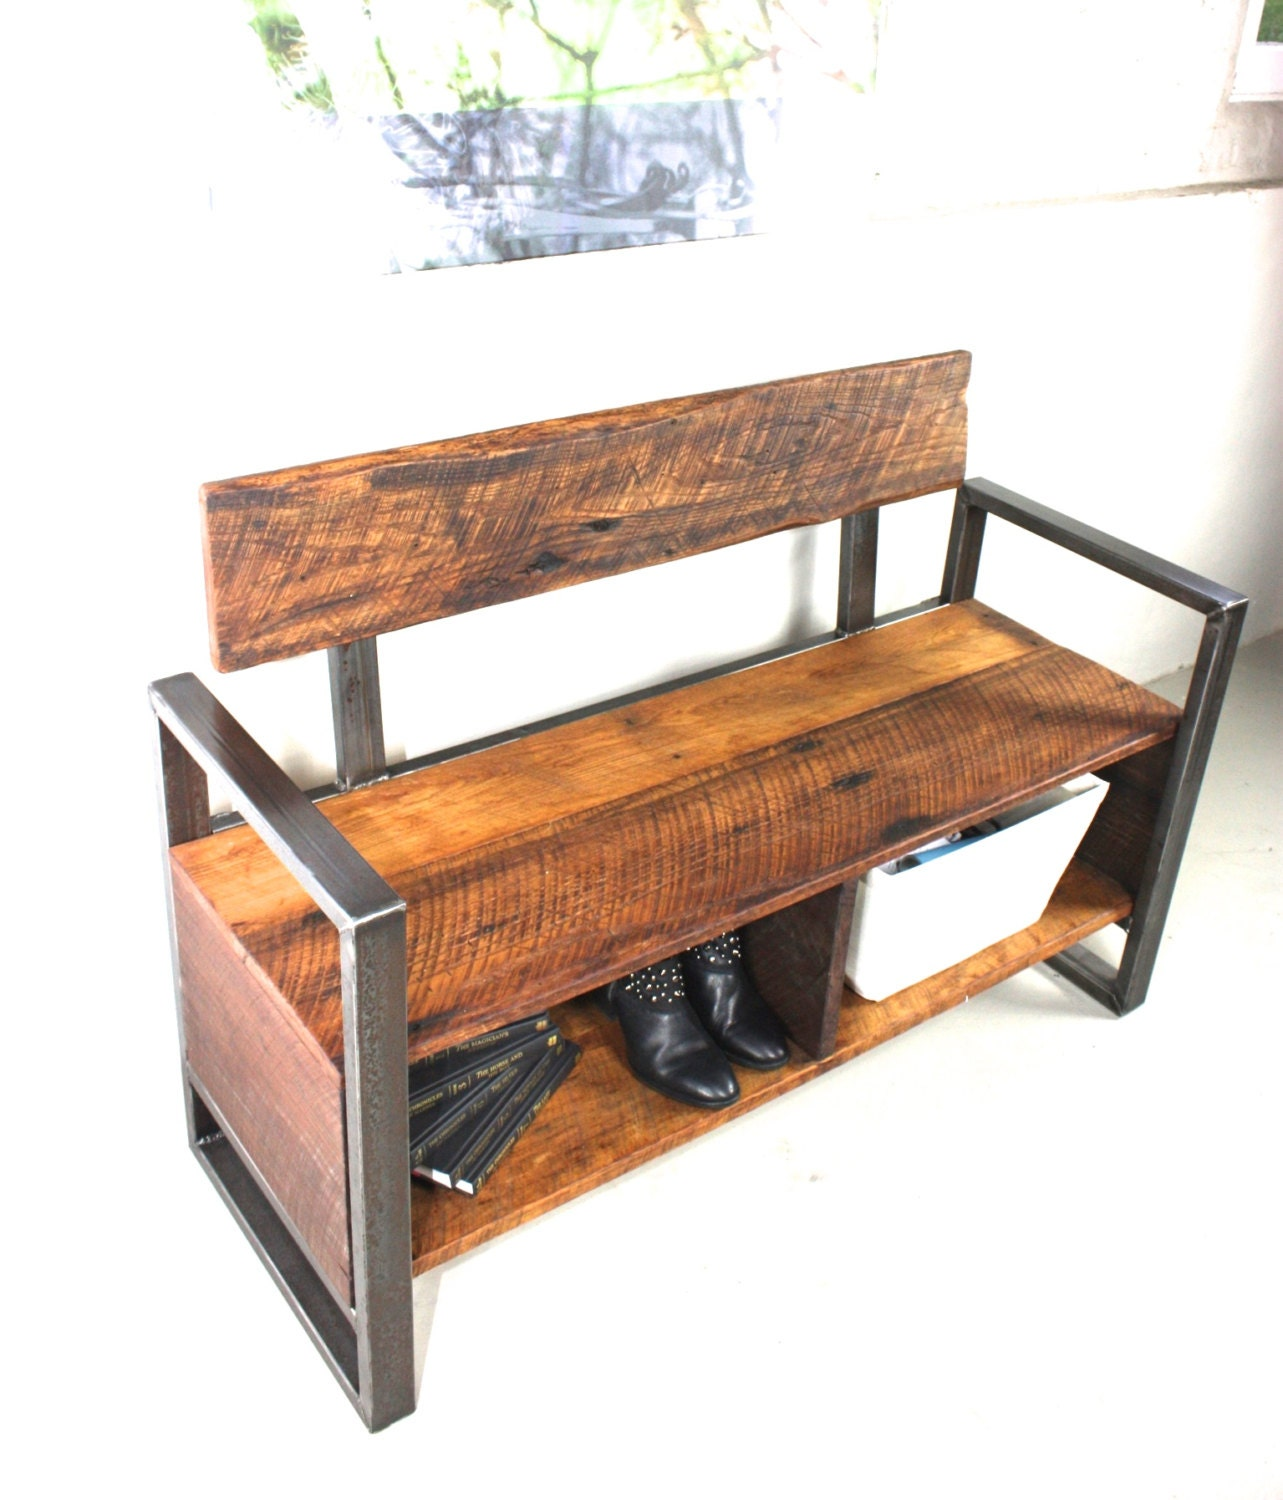 Reclaimed Wood Storage Bench By Wwmake On Etsy